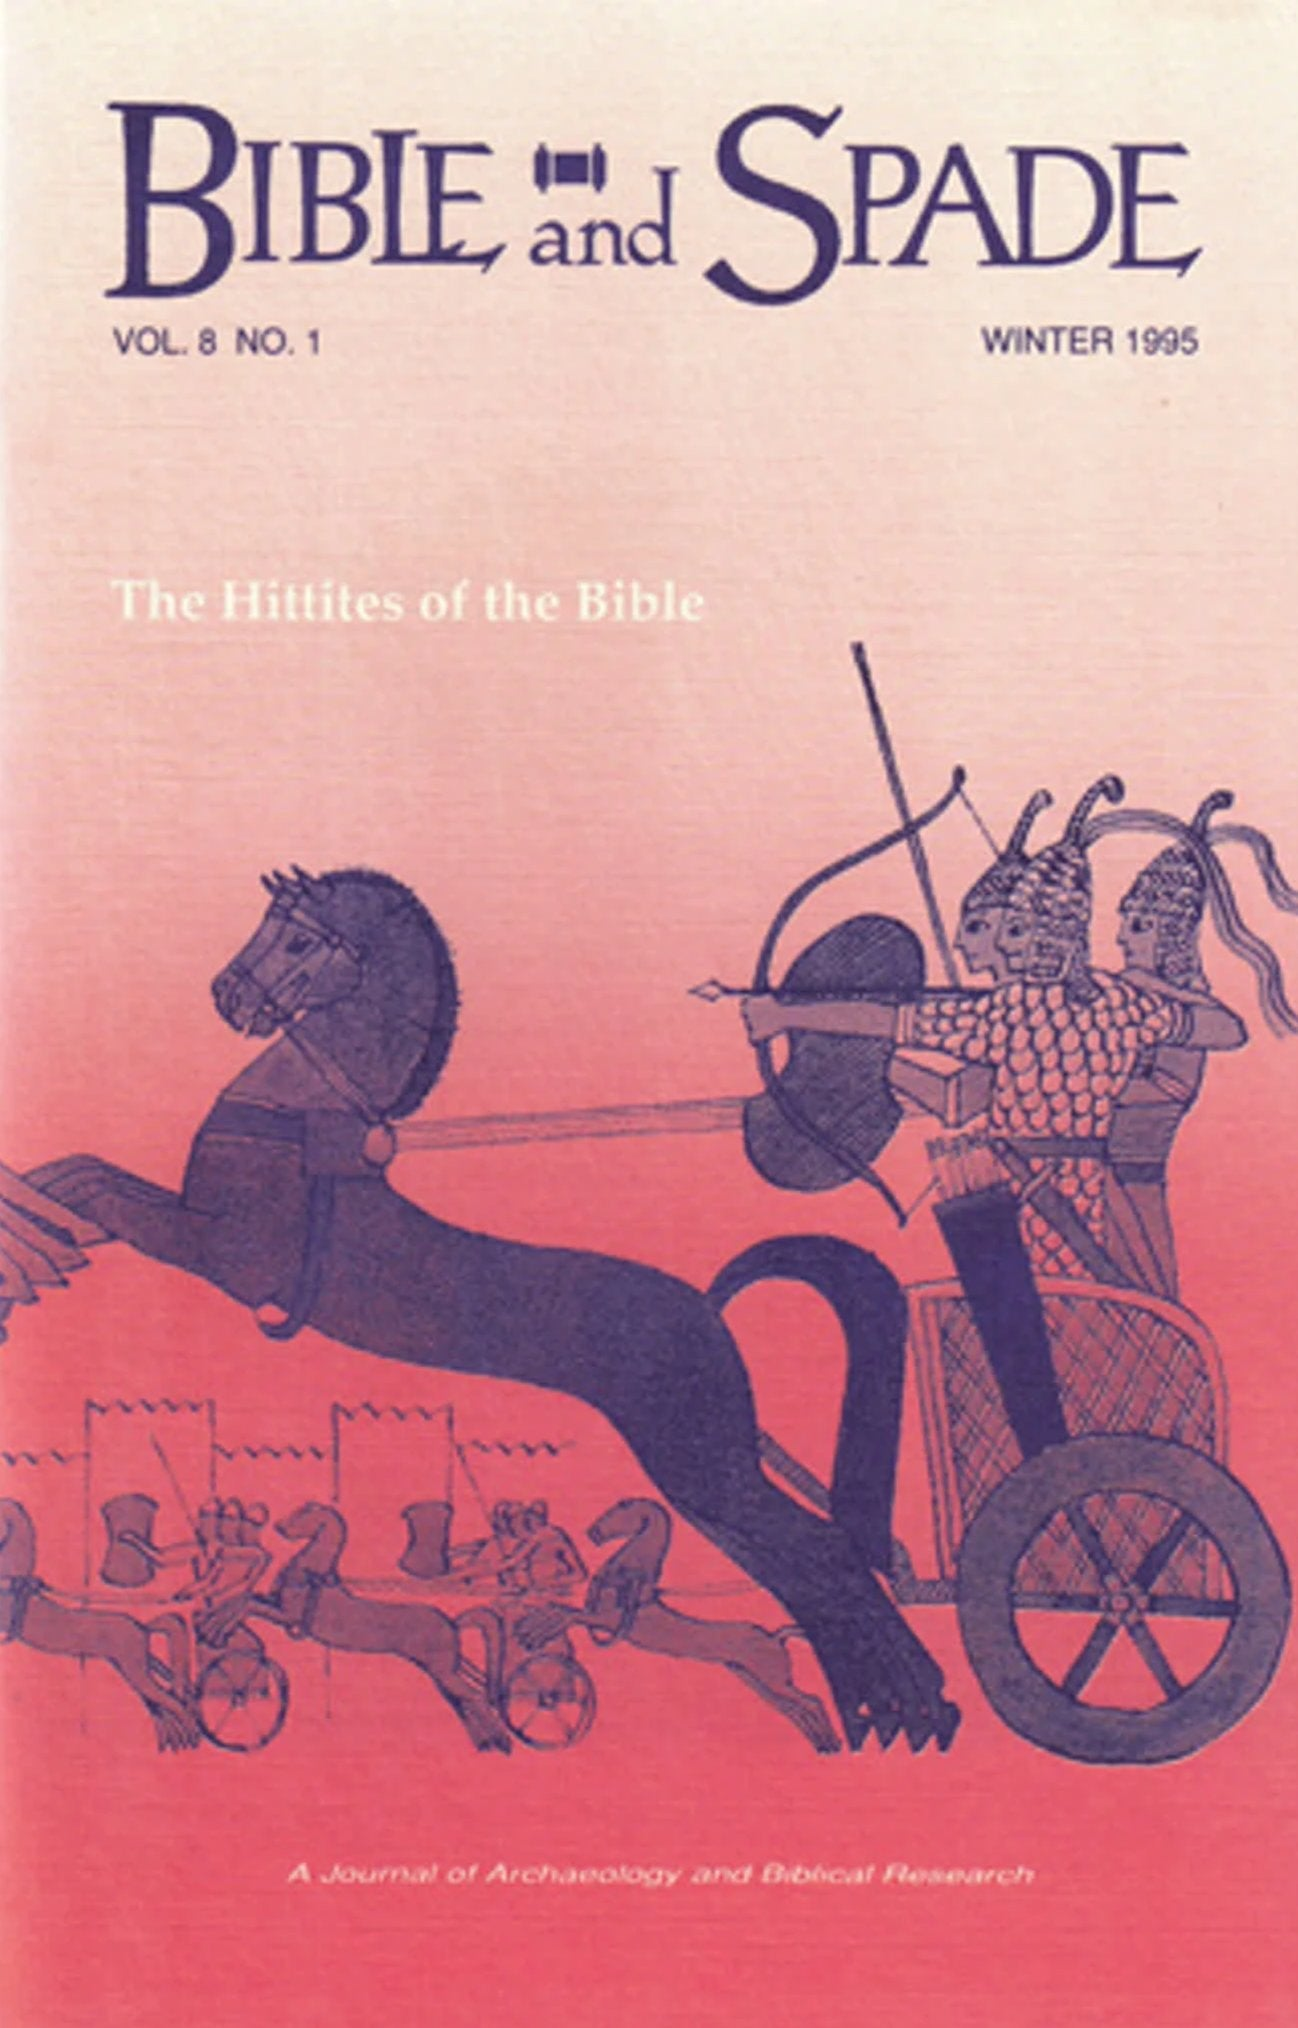 Four issues of BIBLE and SPADE produced in 1995